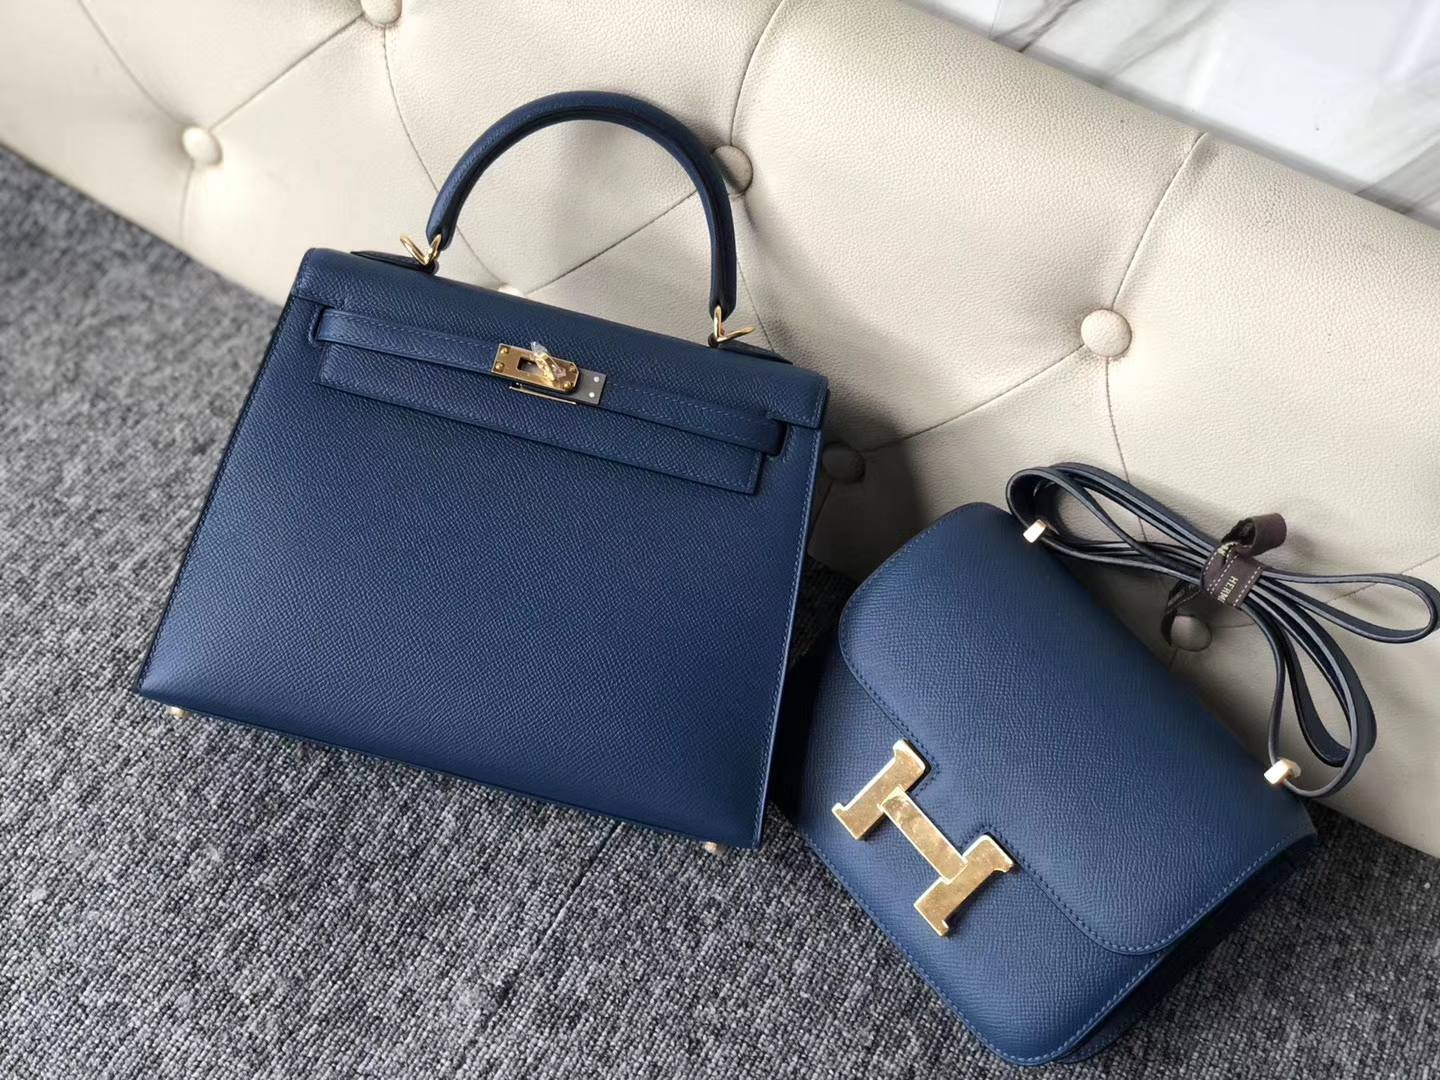 New Arrival Hermes Epsom Calf S4 Deep Blue Kelly Bag25cm Gold Hardware